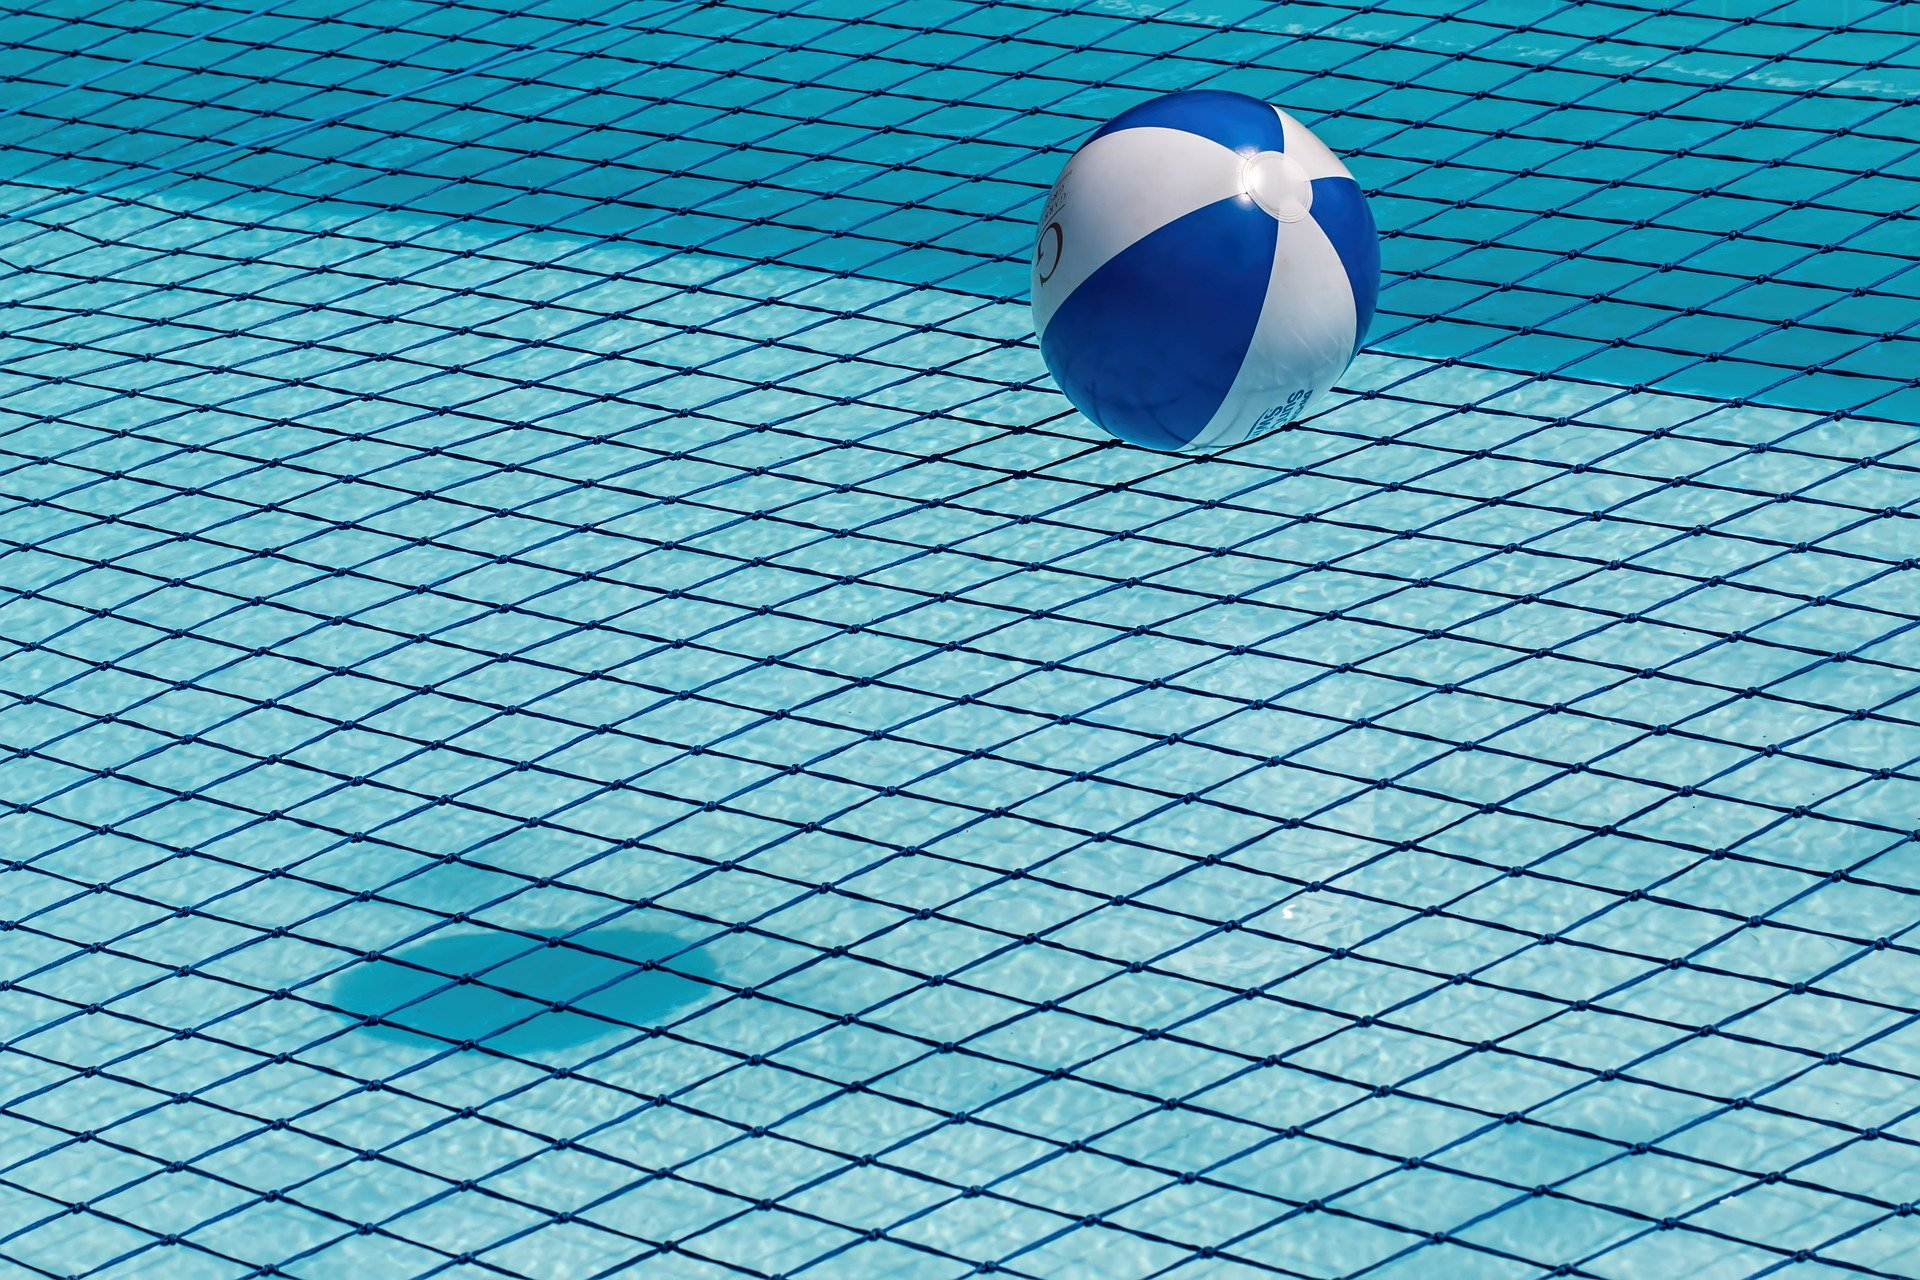 Photo of a blue and white beach ball resting on a black safety net above a blue outdoor pool